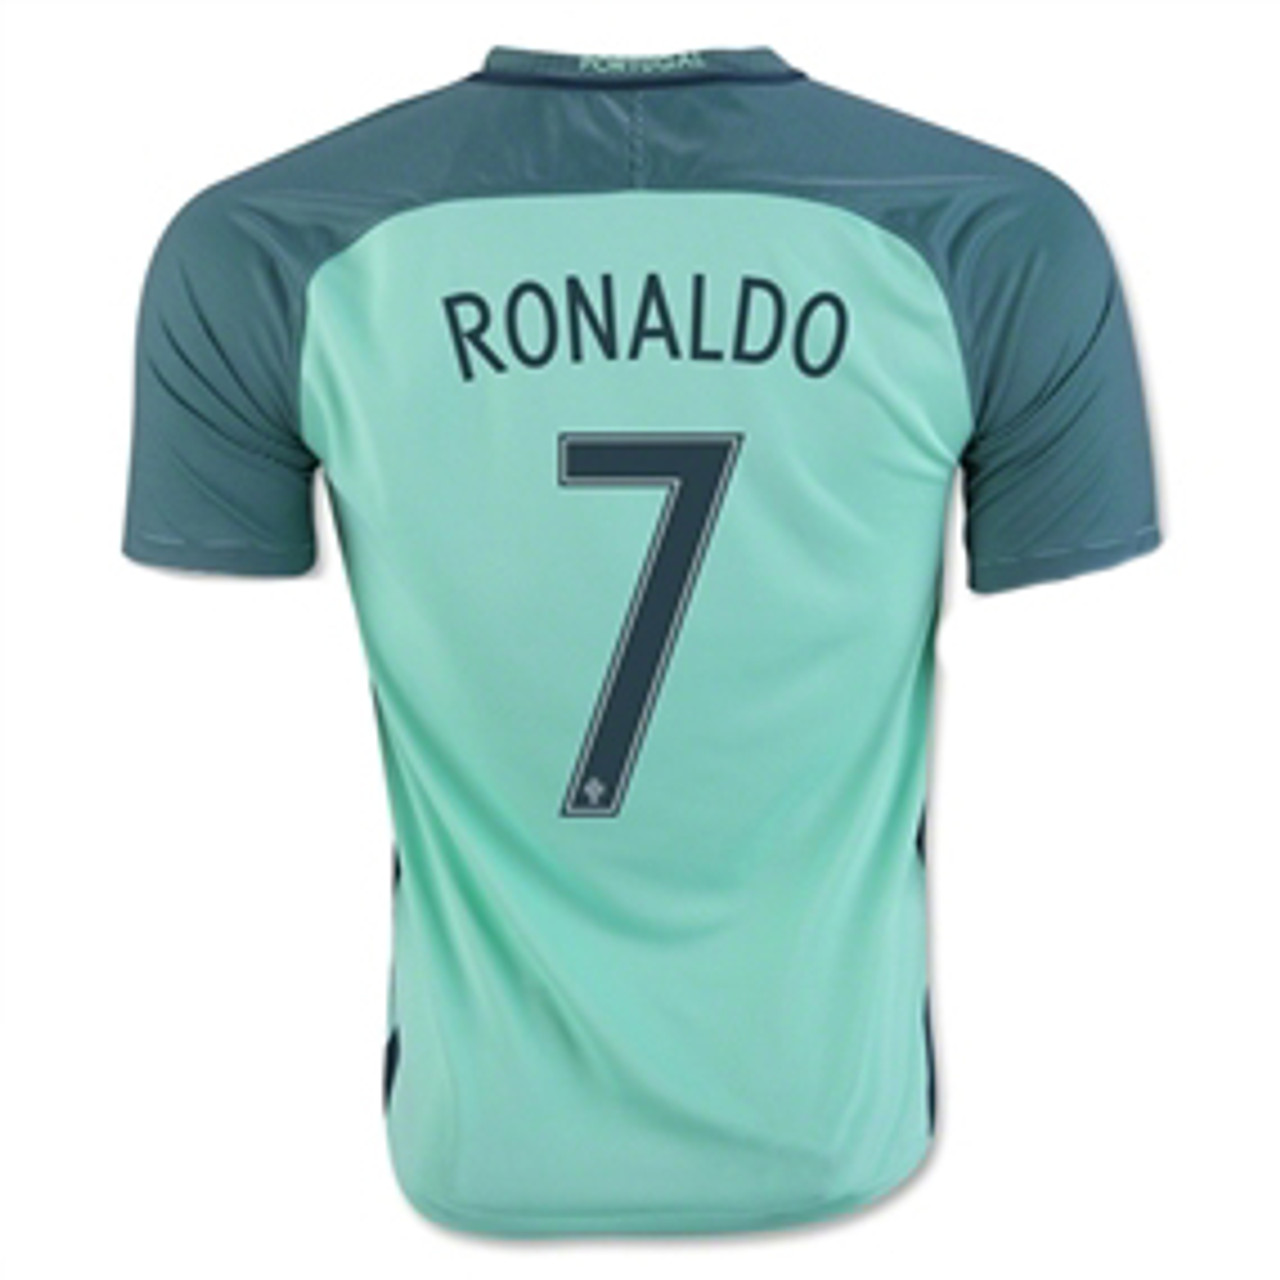 new style 3ad08 cc014 NIKE PORTUGAL 2016 BOYS AWAY `RONALDO` JERSEY green